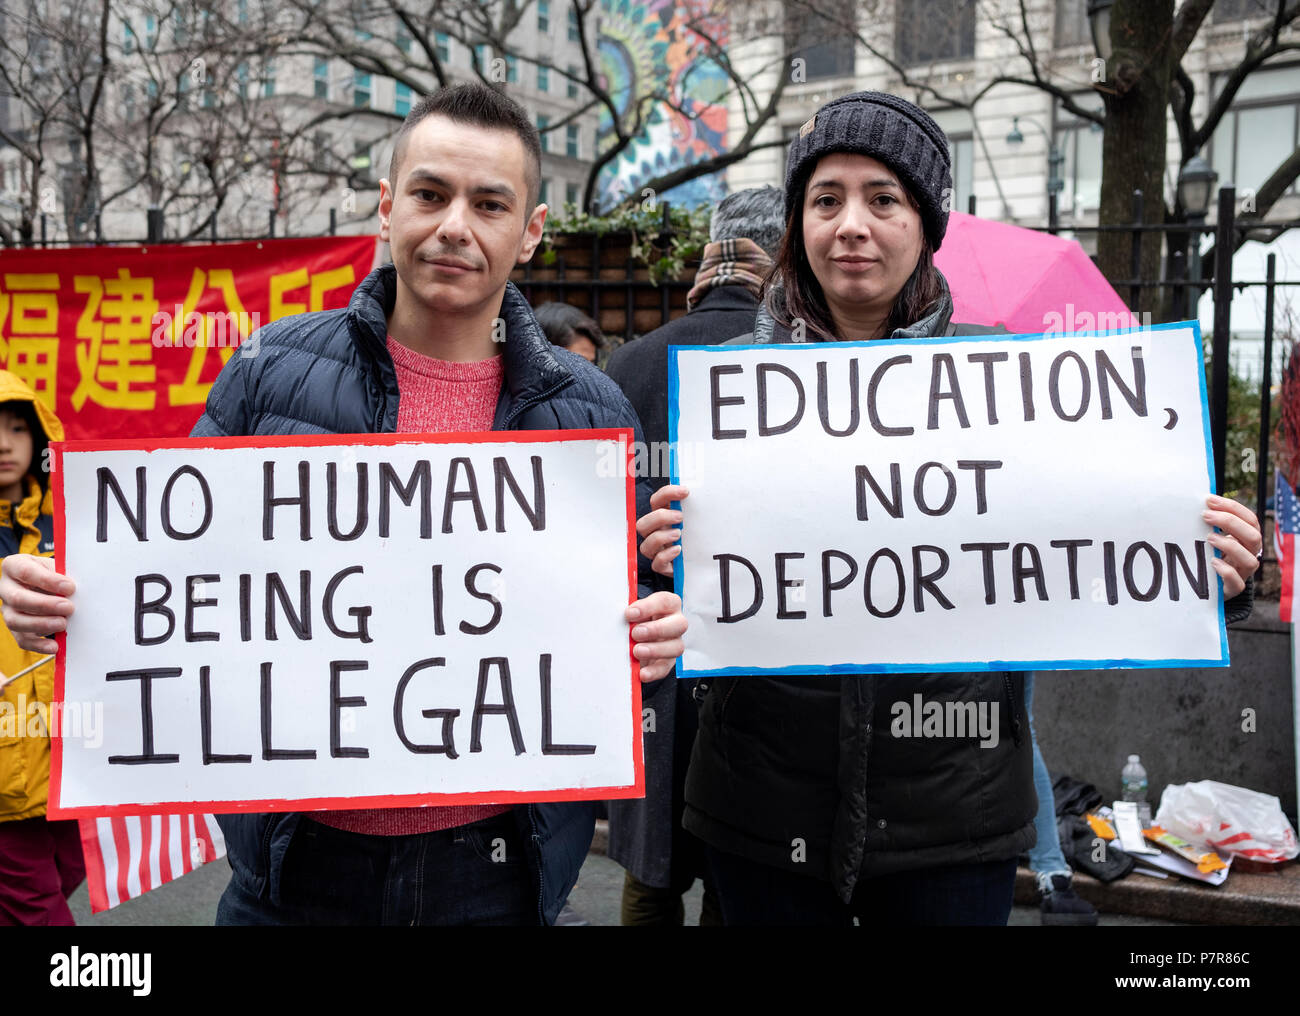 Two Hispanic Americans holding signs against deportation at a pro immigration ant-Trump Rally at Herald Square in Manhattan, New York City. Stock Photo